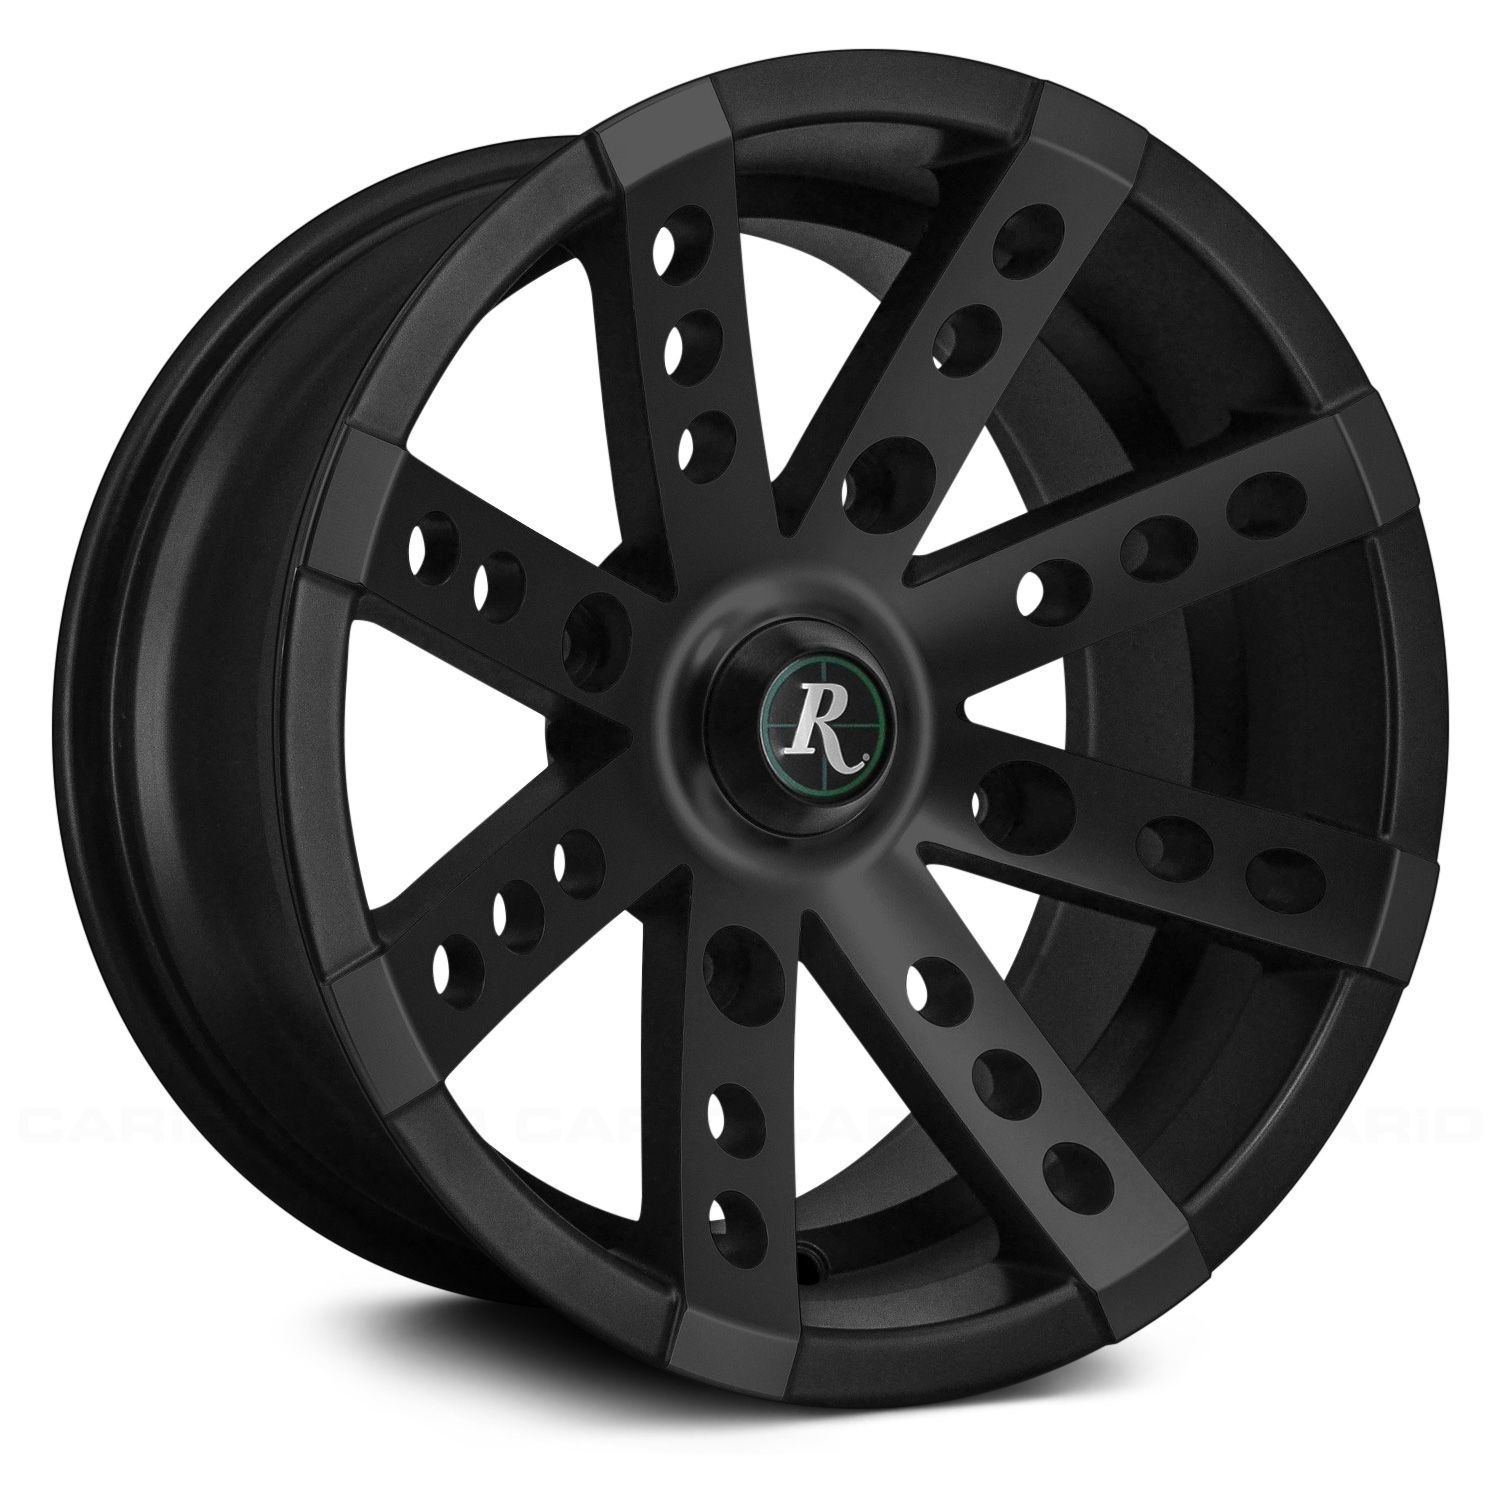 Remington buckshot atvutv wheels satin black rims remingtombuckshot atvutv satin black sciox Gallery